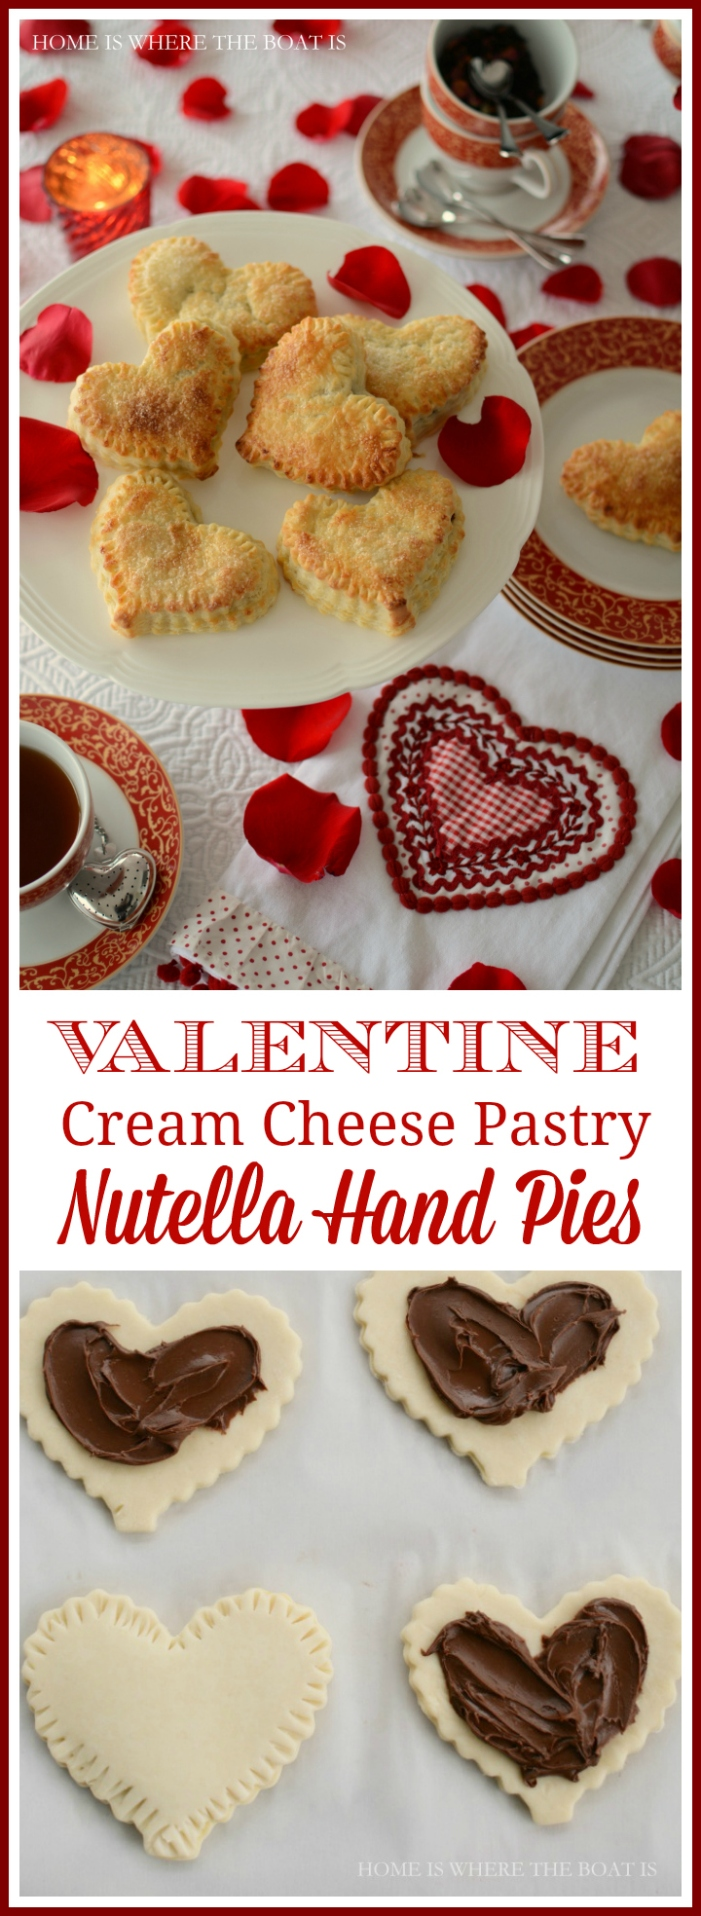 Valentine Cream Cheese Pastry Nutella Hand Pies